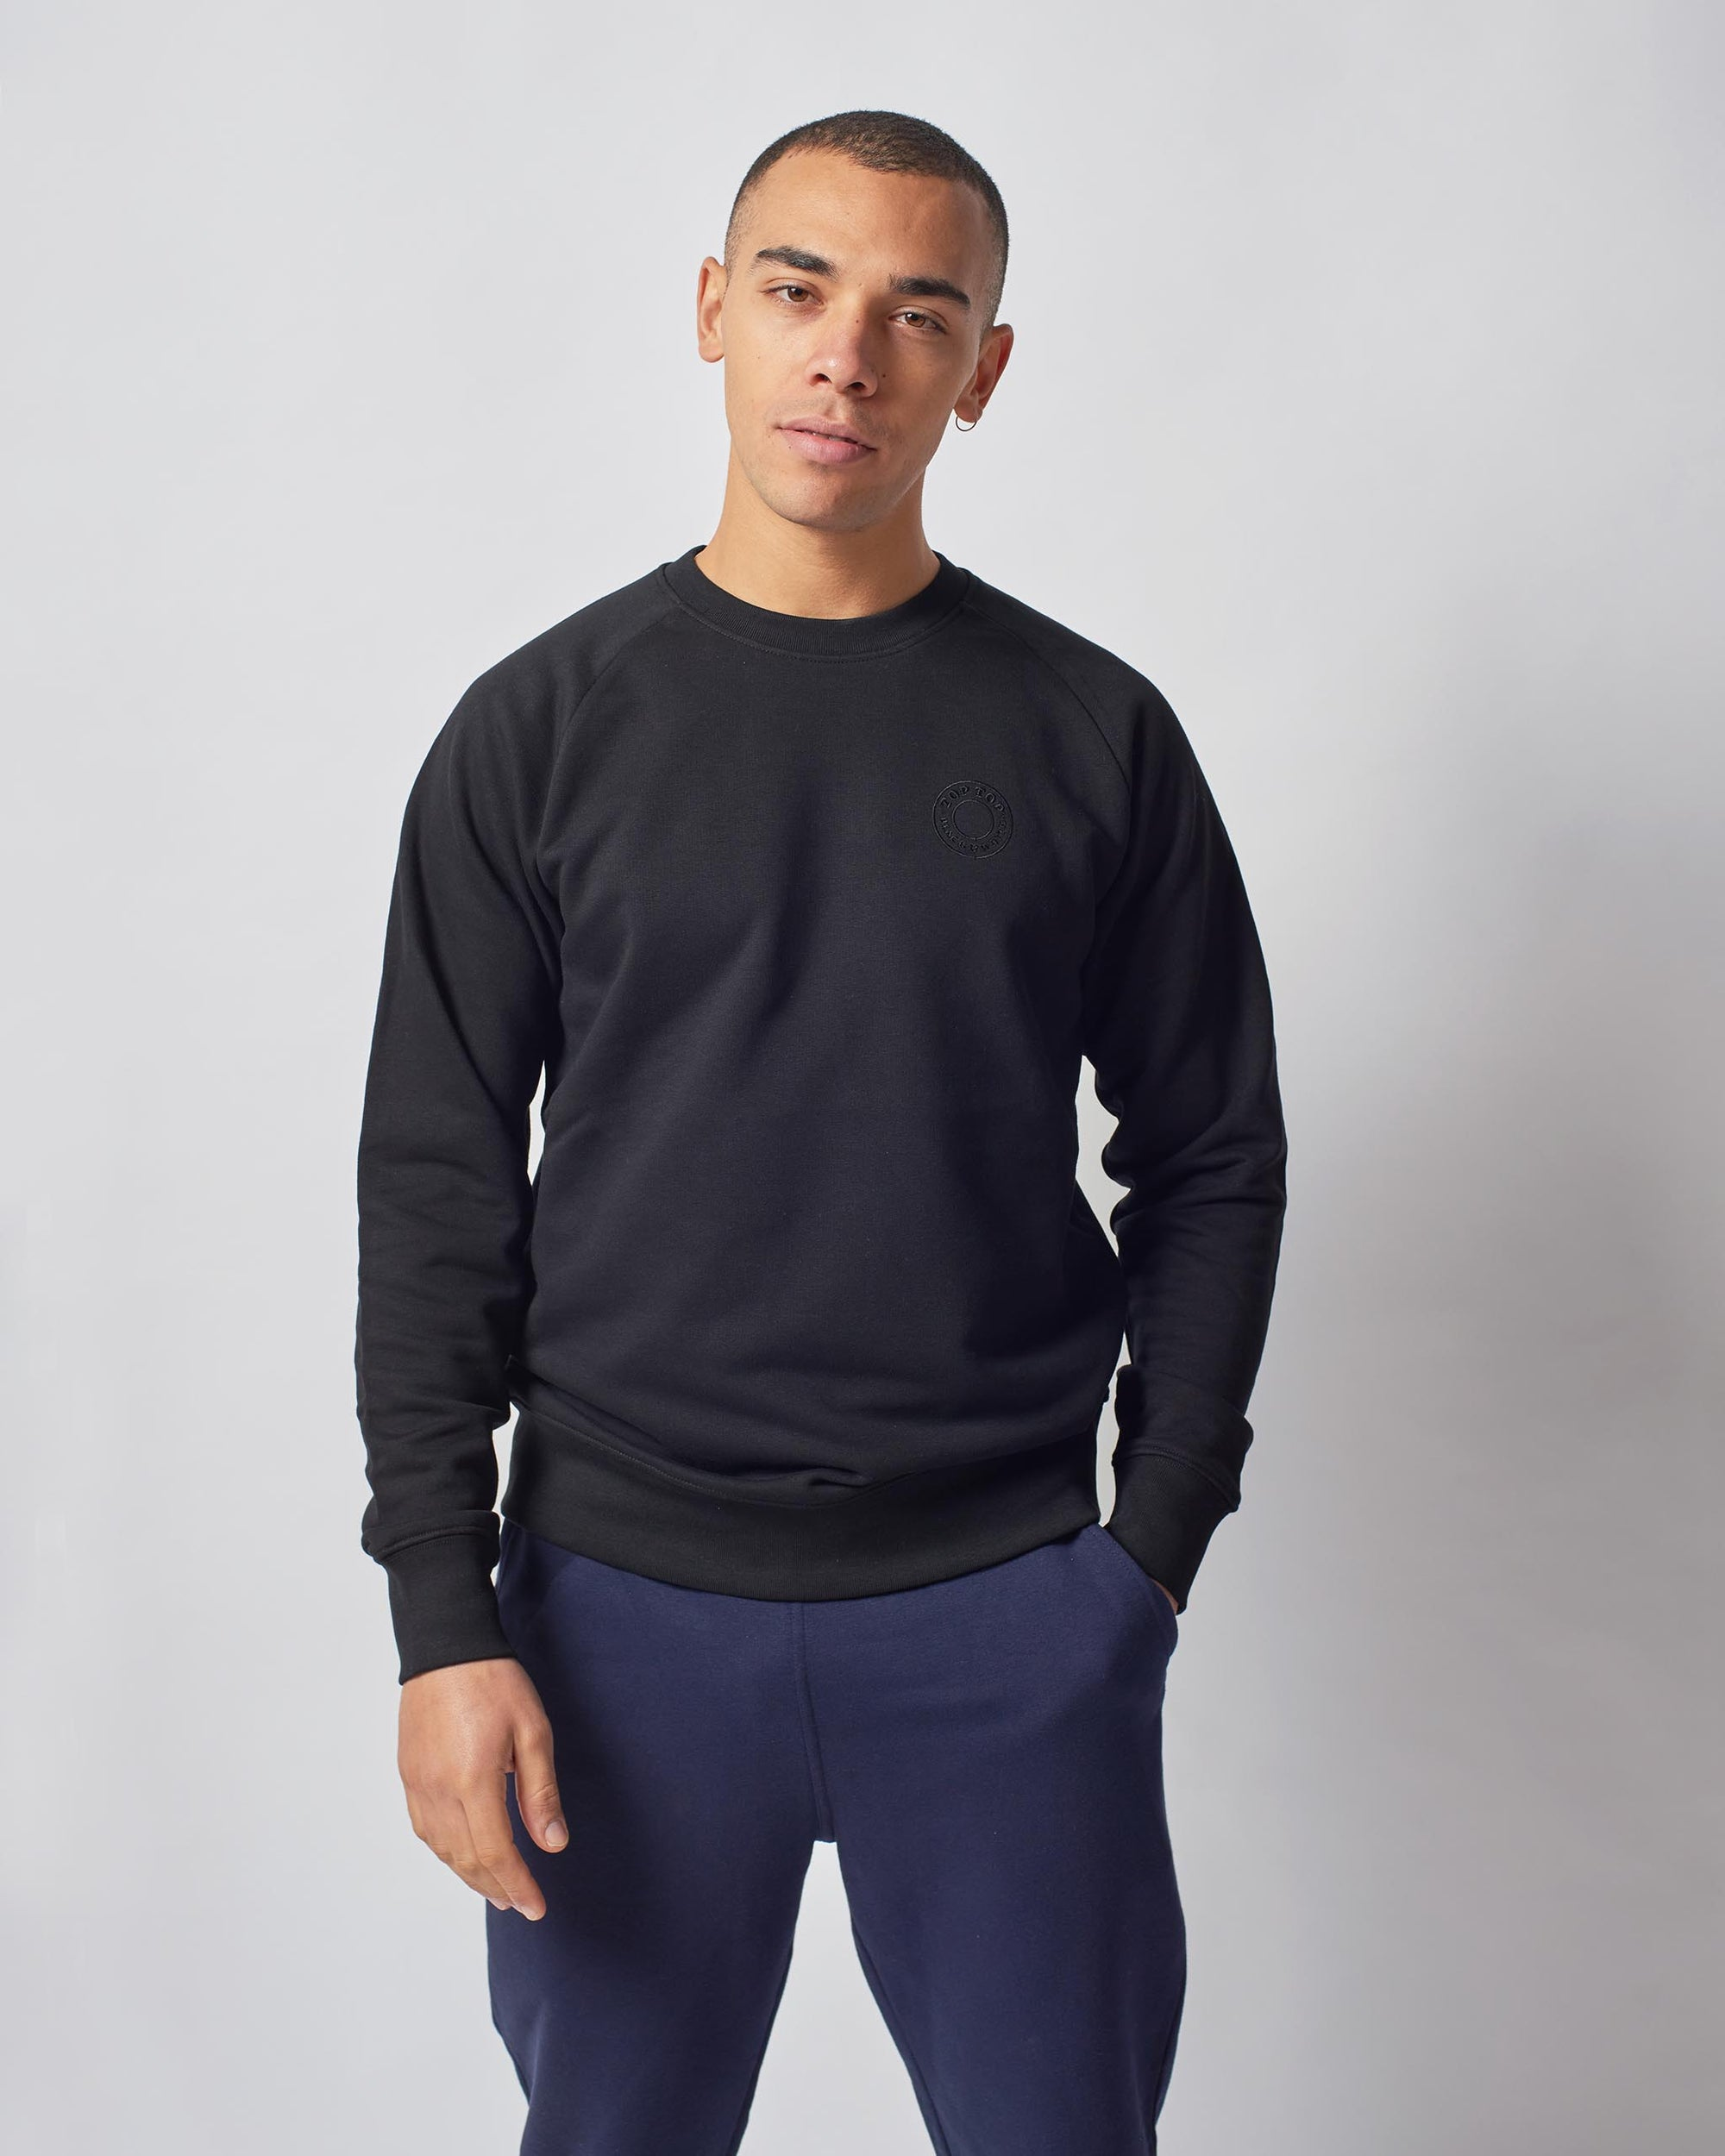 mens-black-raglan-sweatshirt